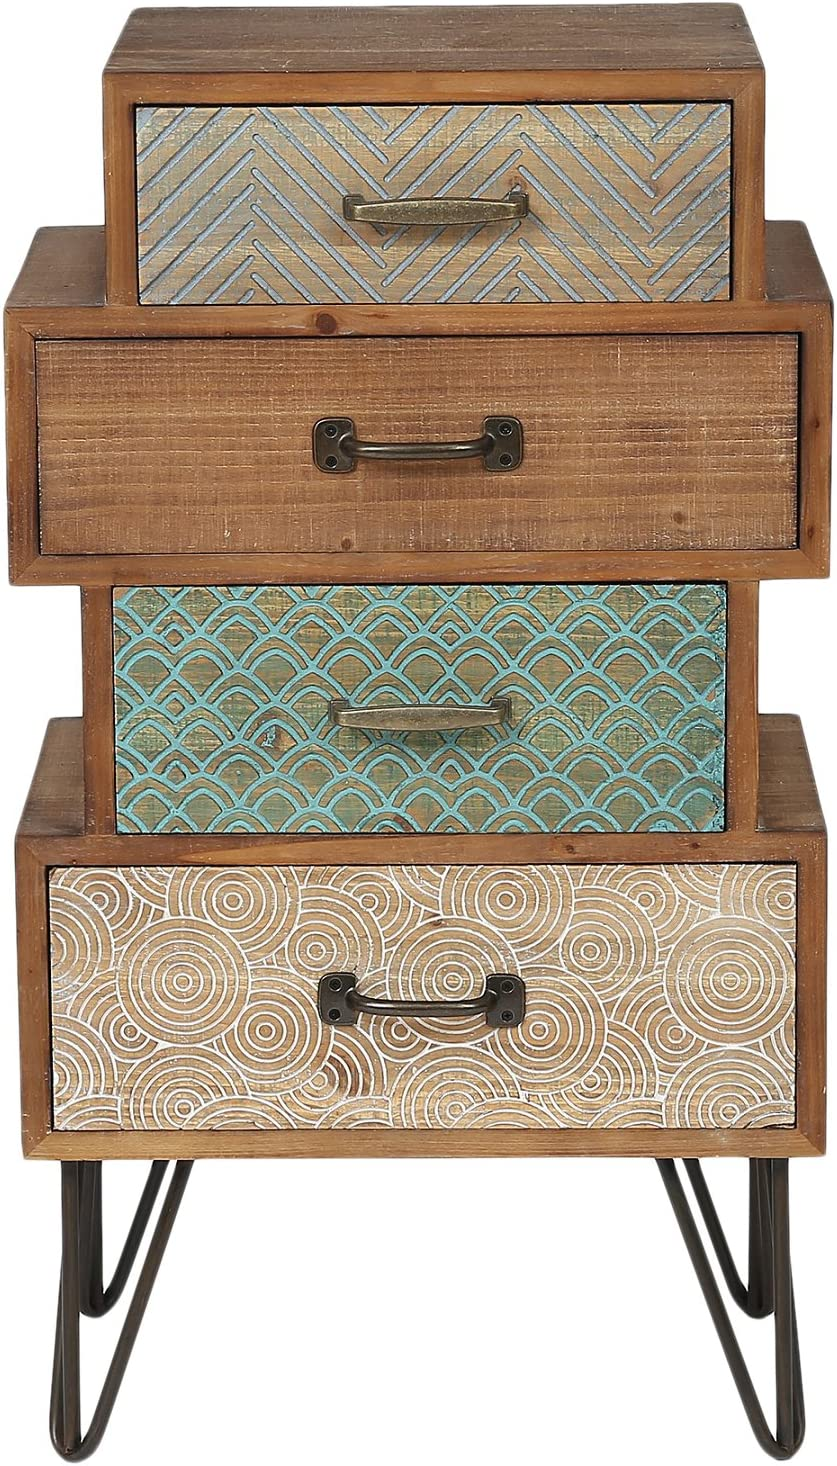 Editors' Choice: Winsome House Chic Four Drawer Cabinet End Table